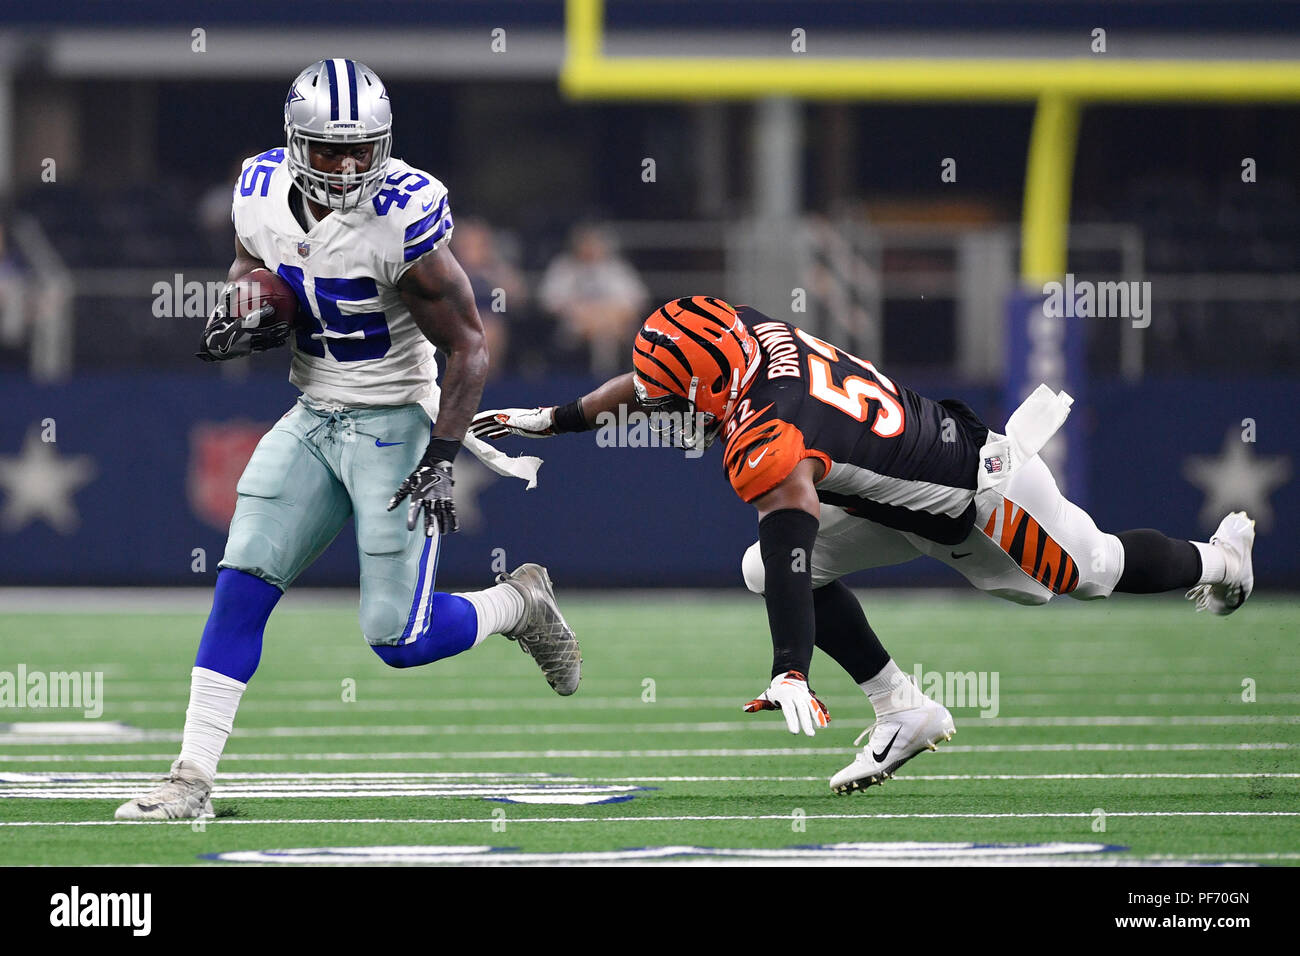 info for 619d2 a79c1 August 18, 2018: Cincinnati Bengals linebacker Preston Brown ...